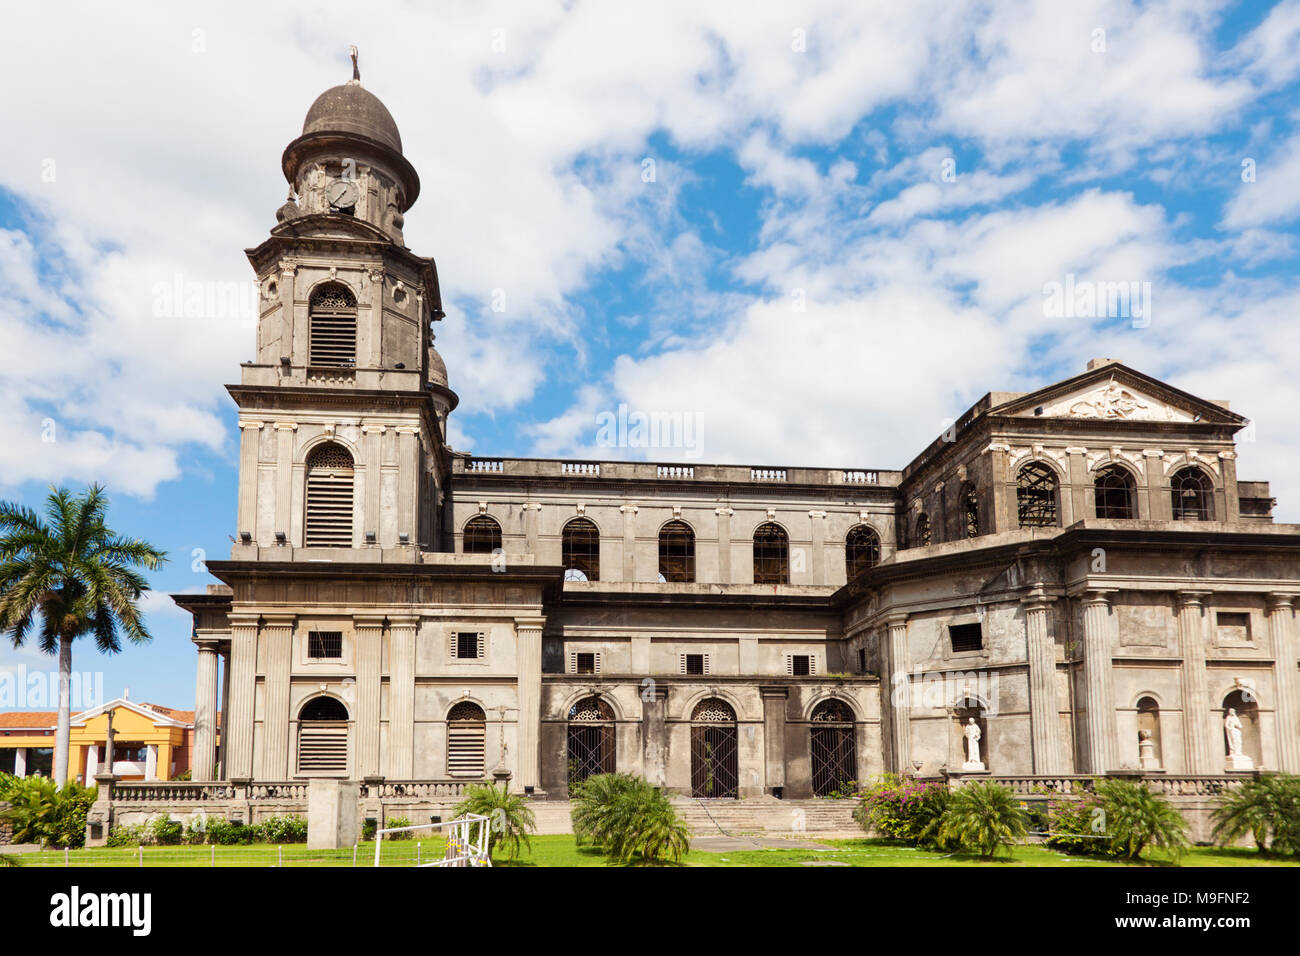 Old Cathedral of Managua. Managua, Nicaragua. Stock Photo